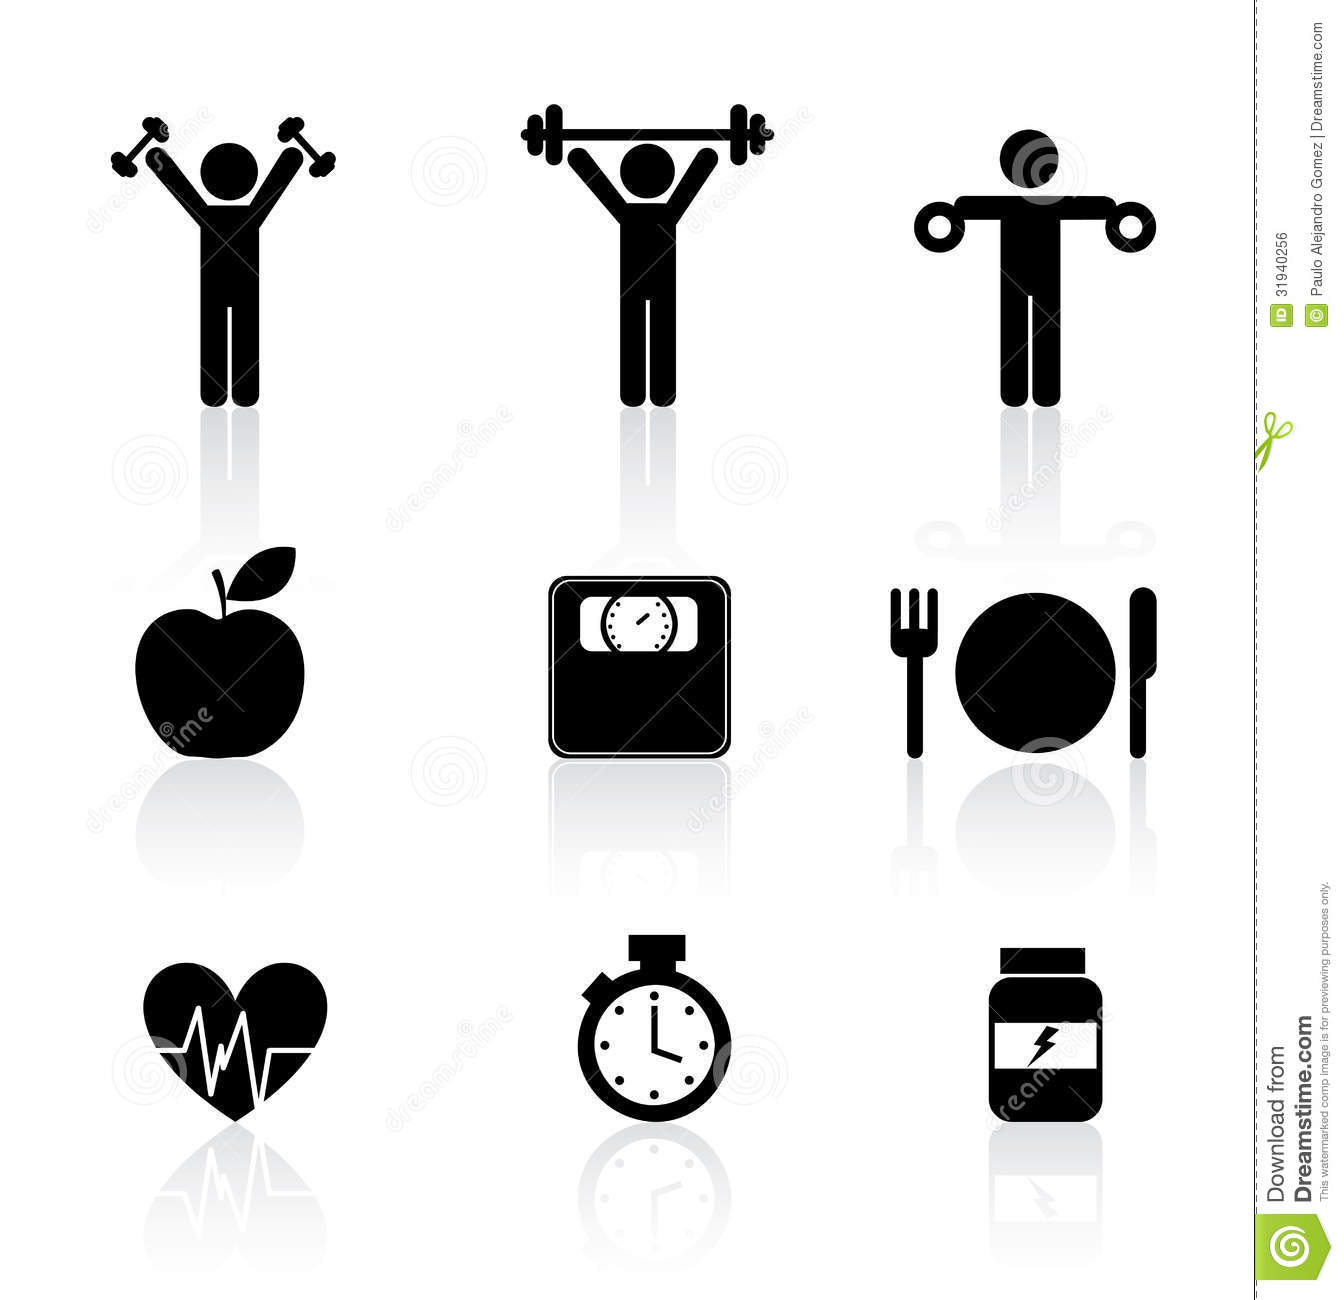 Fitness Icons Royalty Free Stock Image - Image: 31940256